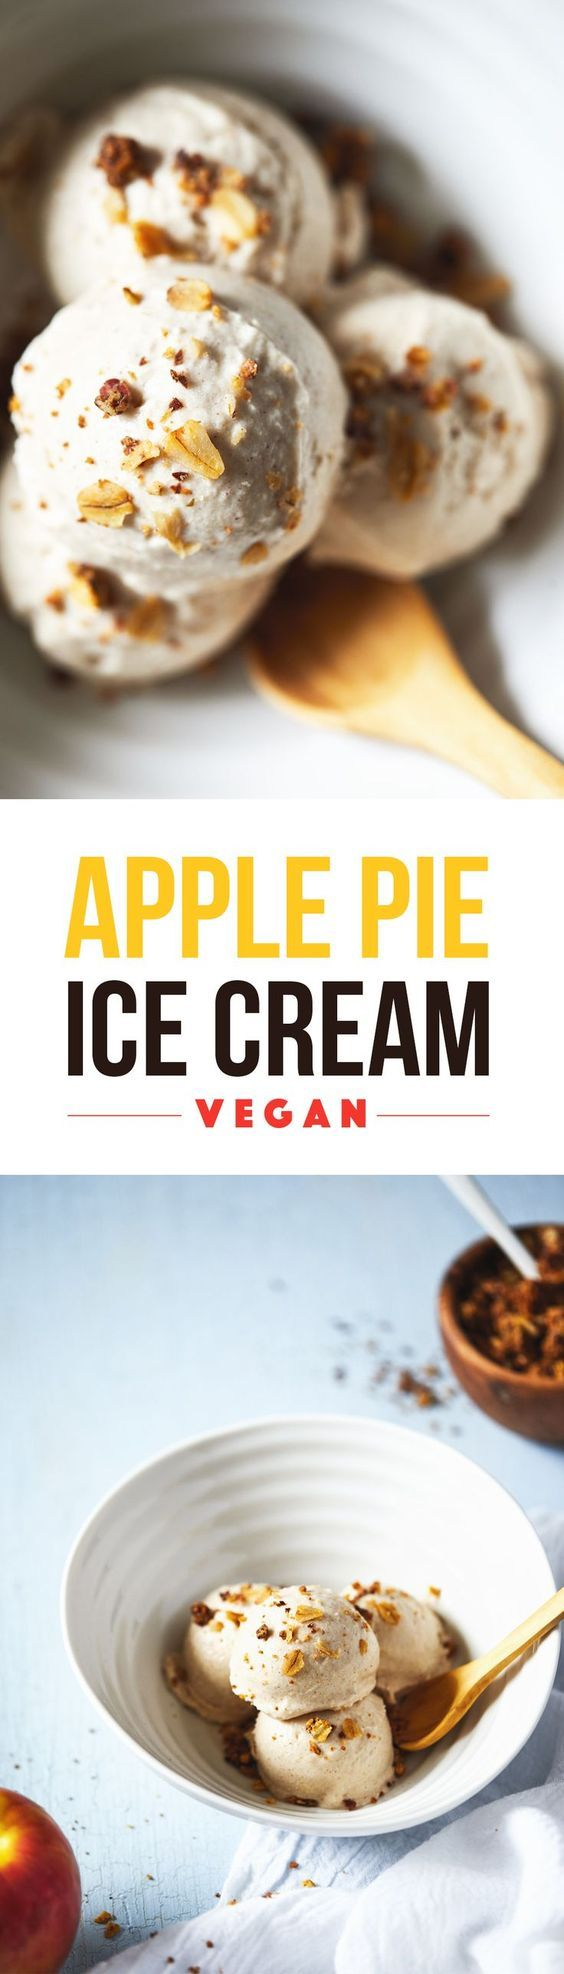 Apple Pie Ice Cream with Cinnamon Oat Crumble — Natural Girl Modern World